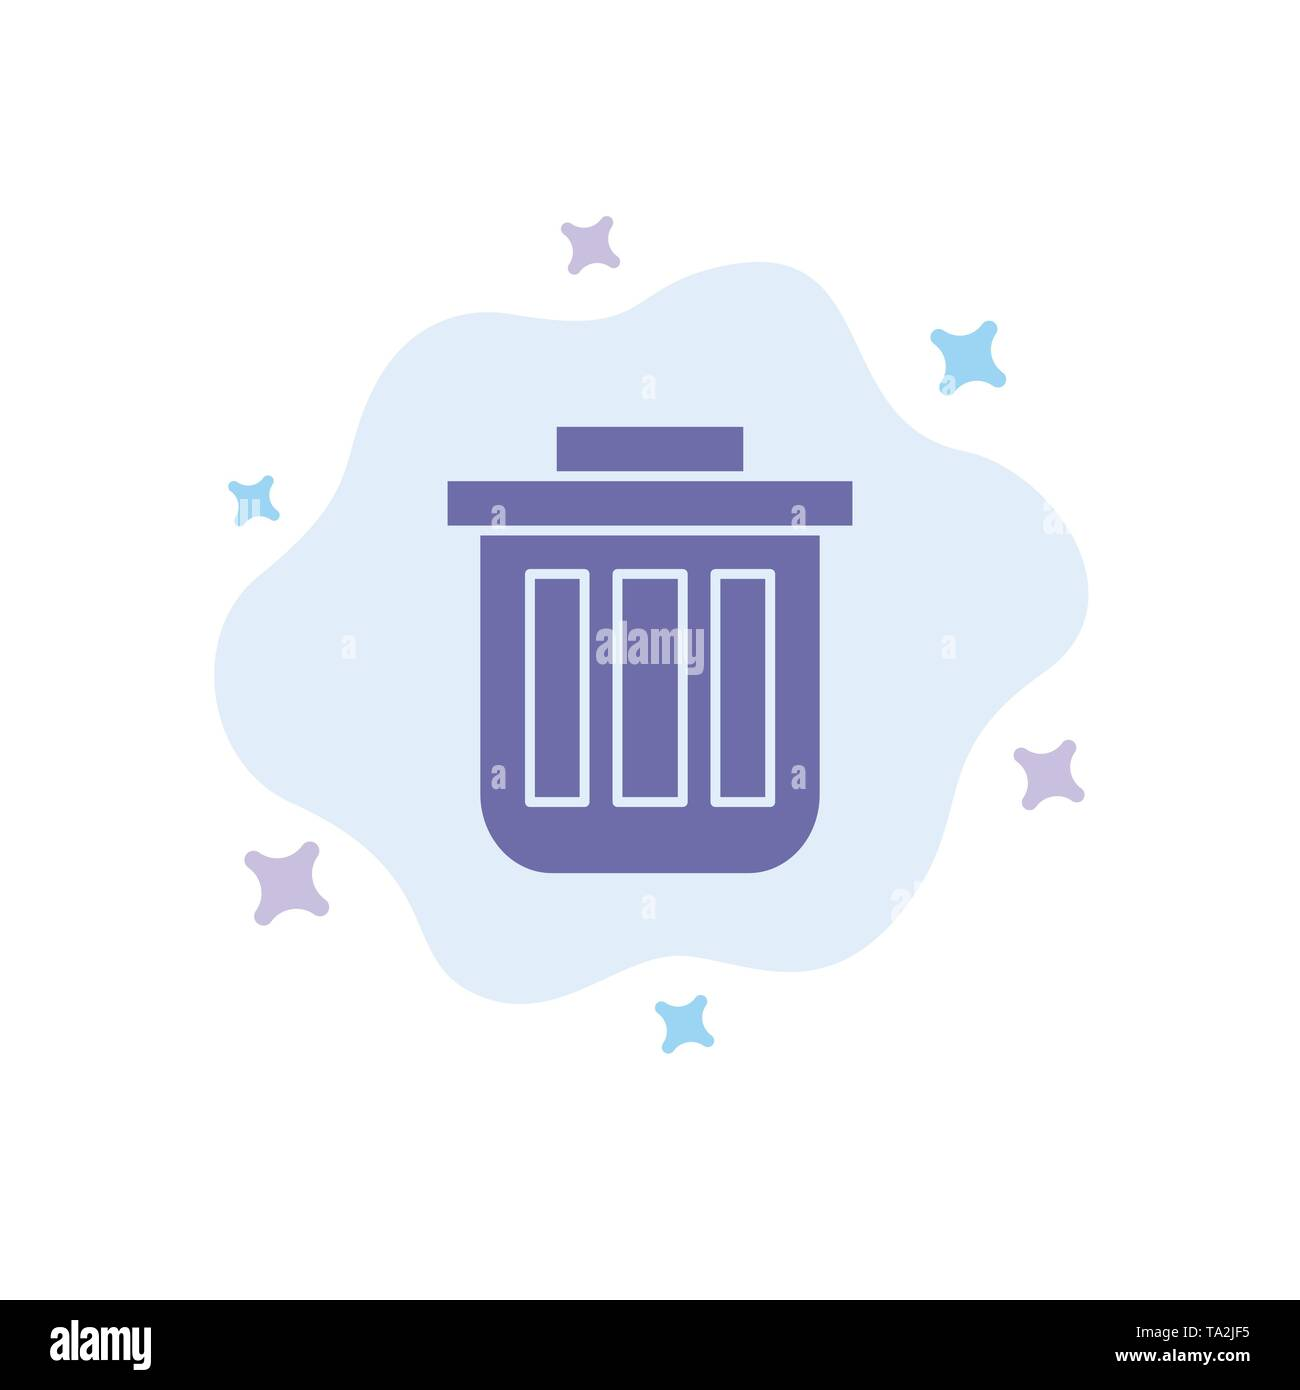 Trash, Basket, Bin, Can, Container, Dustbin, Office Blue Icon on Abstract Cloud Background - Stock Image